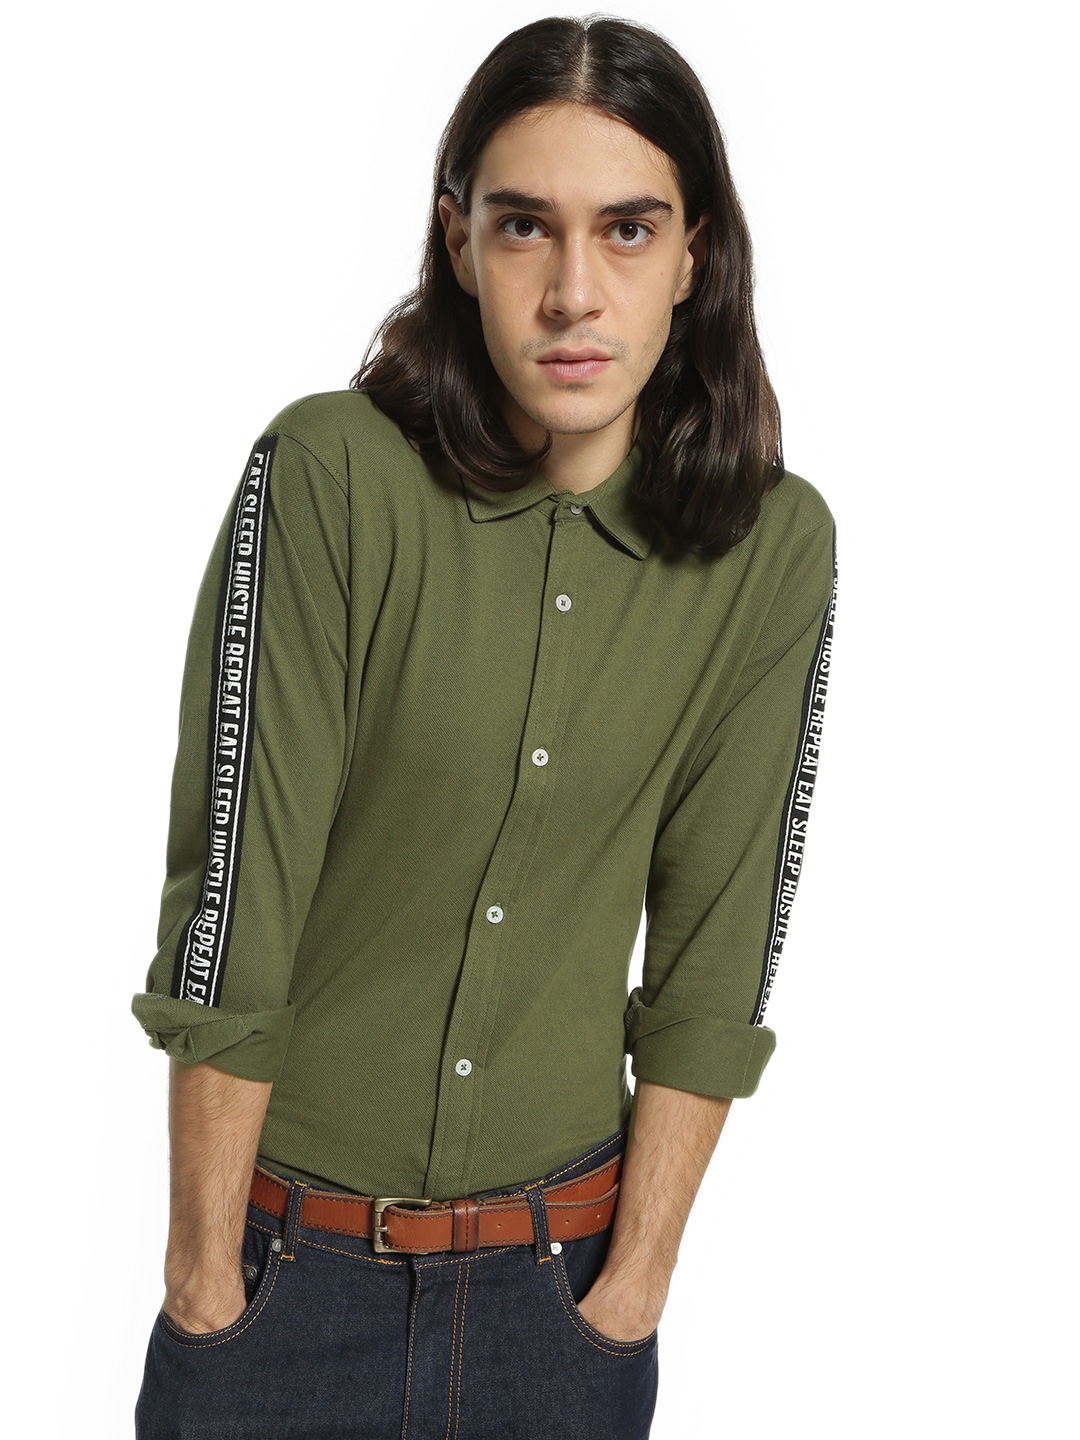 Garcon Green Pique Slogan Print Side Tape Shirt 1